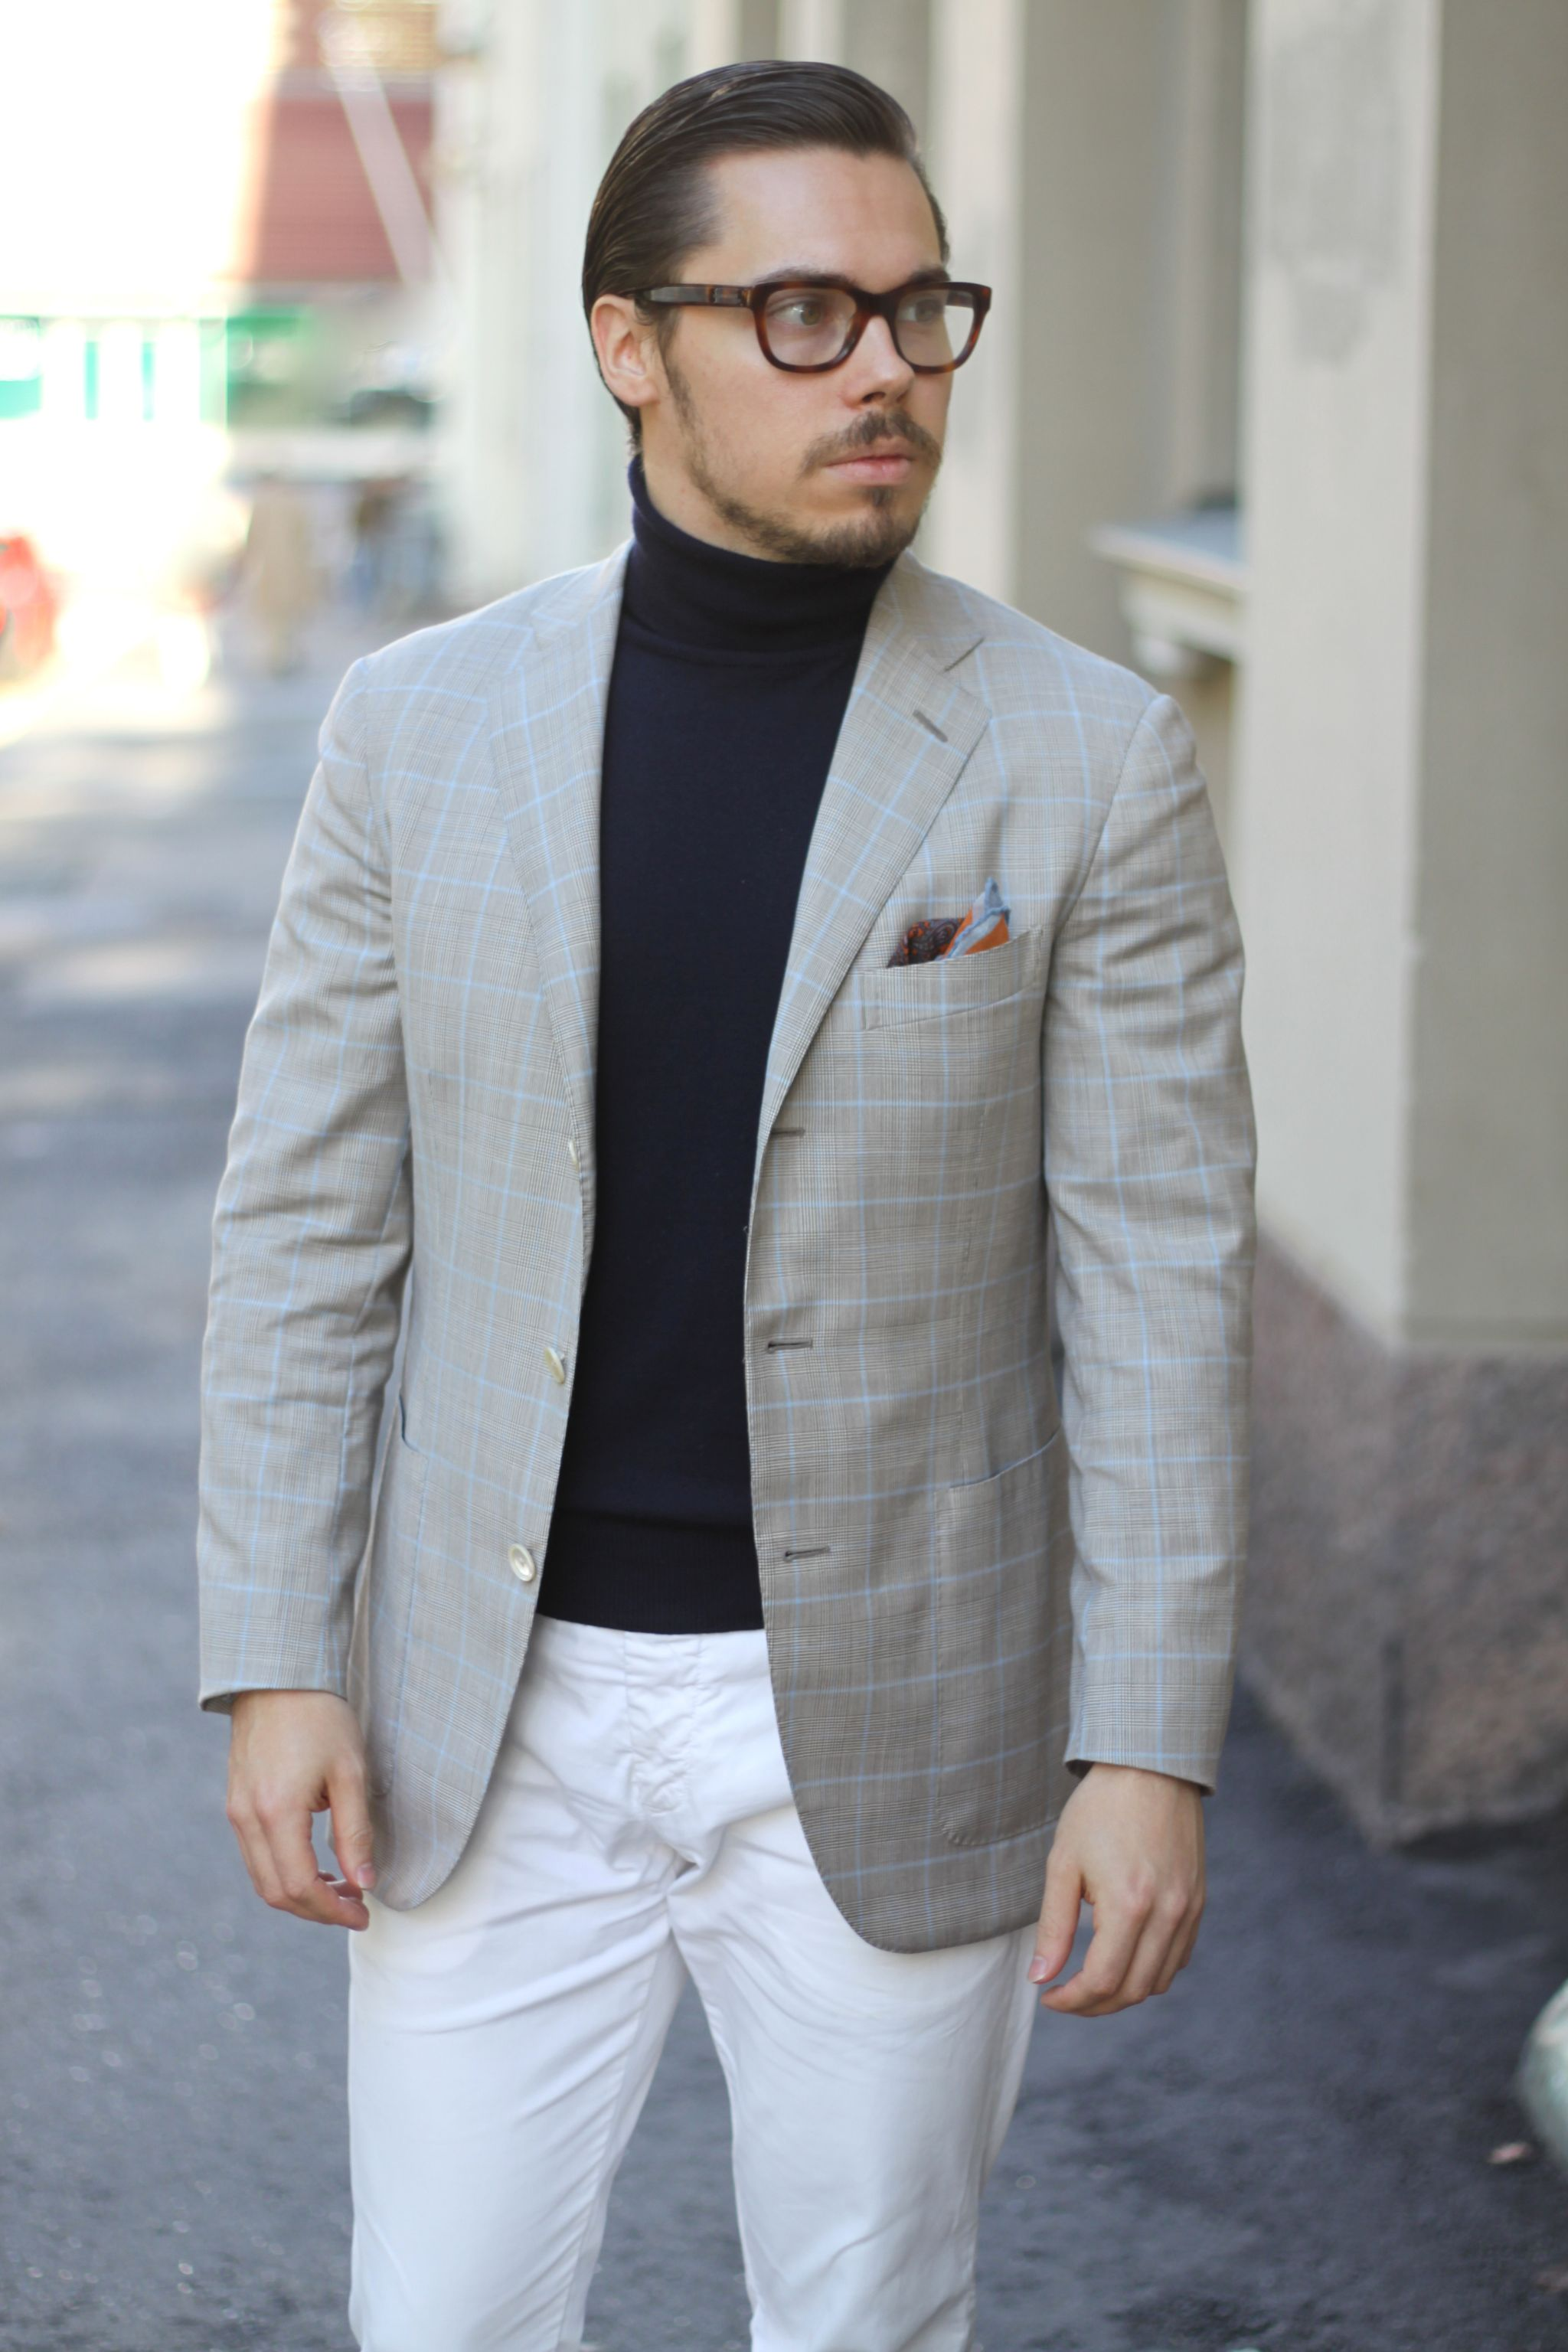 Sport coat with roll neck sweater and cotton slacks